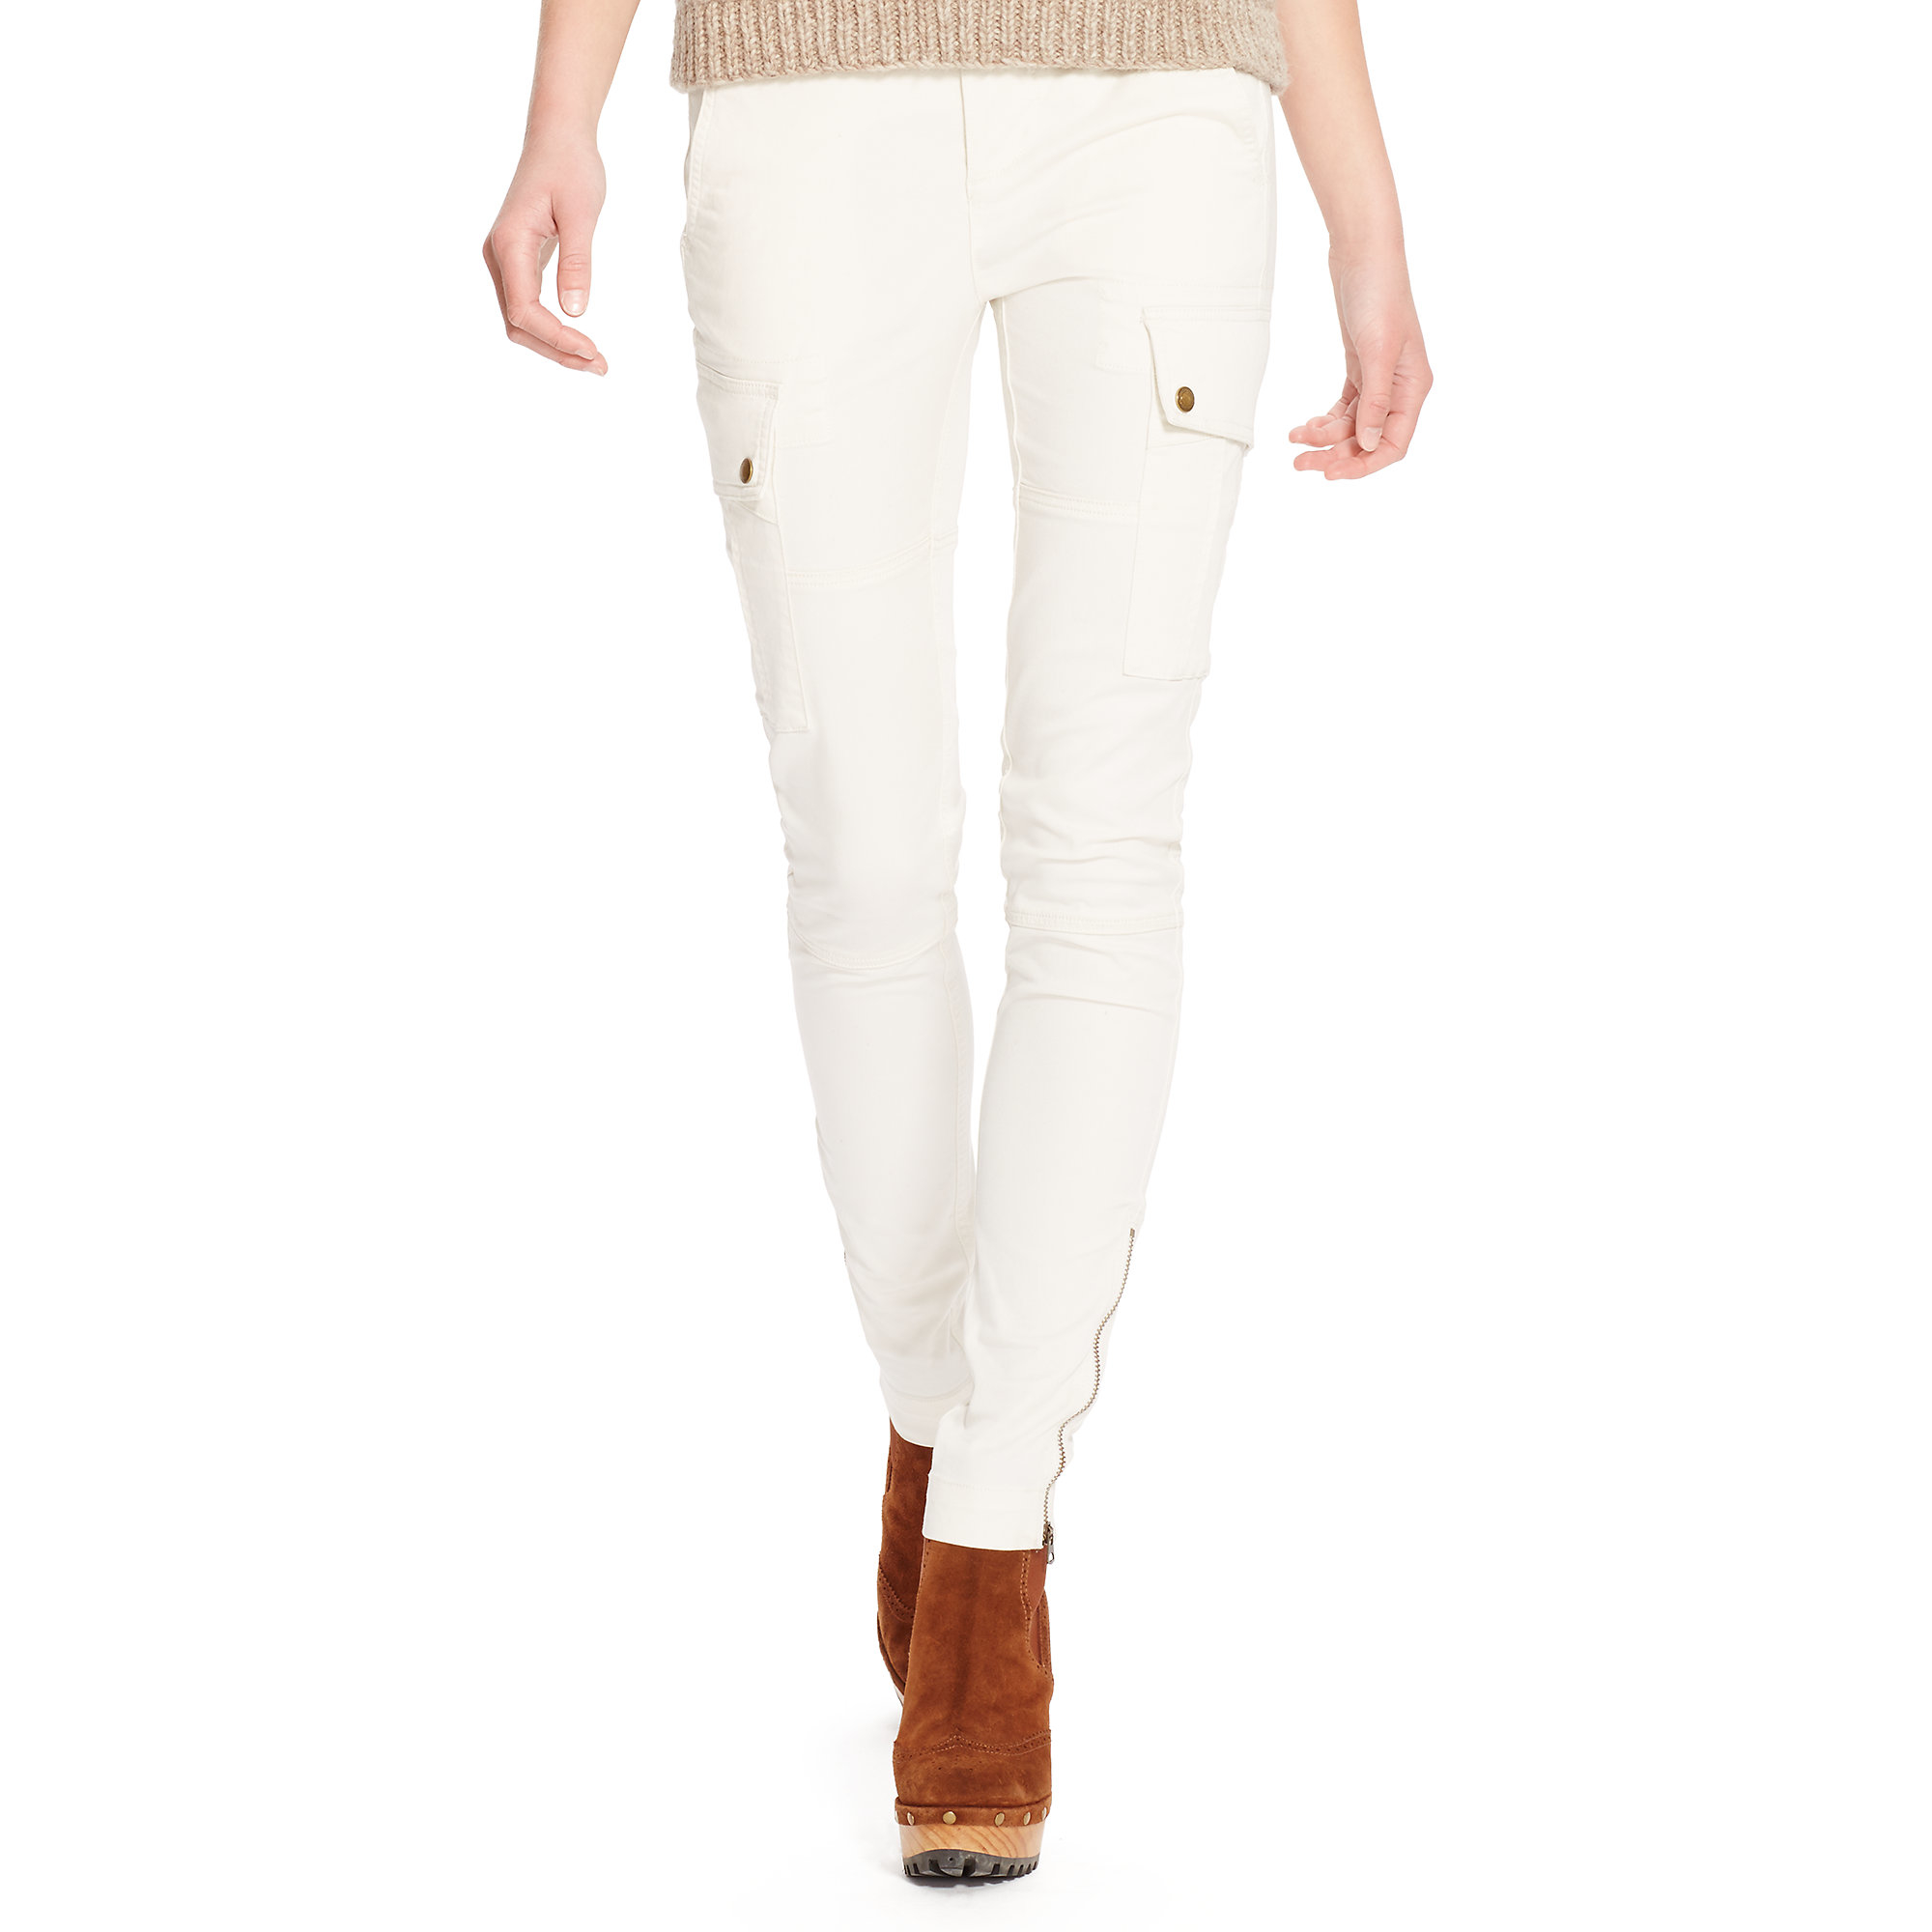 Lyst - Polo Ralph Lauren Stretch Twill Cargo Pant in Natural 914eca5c84b